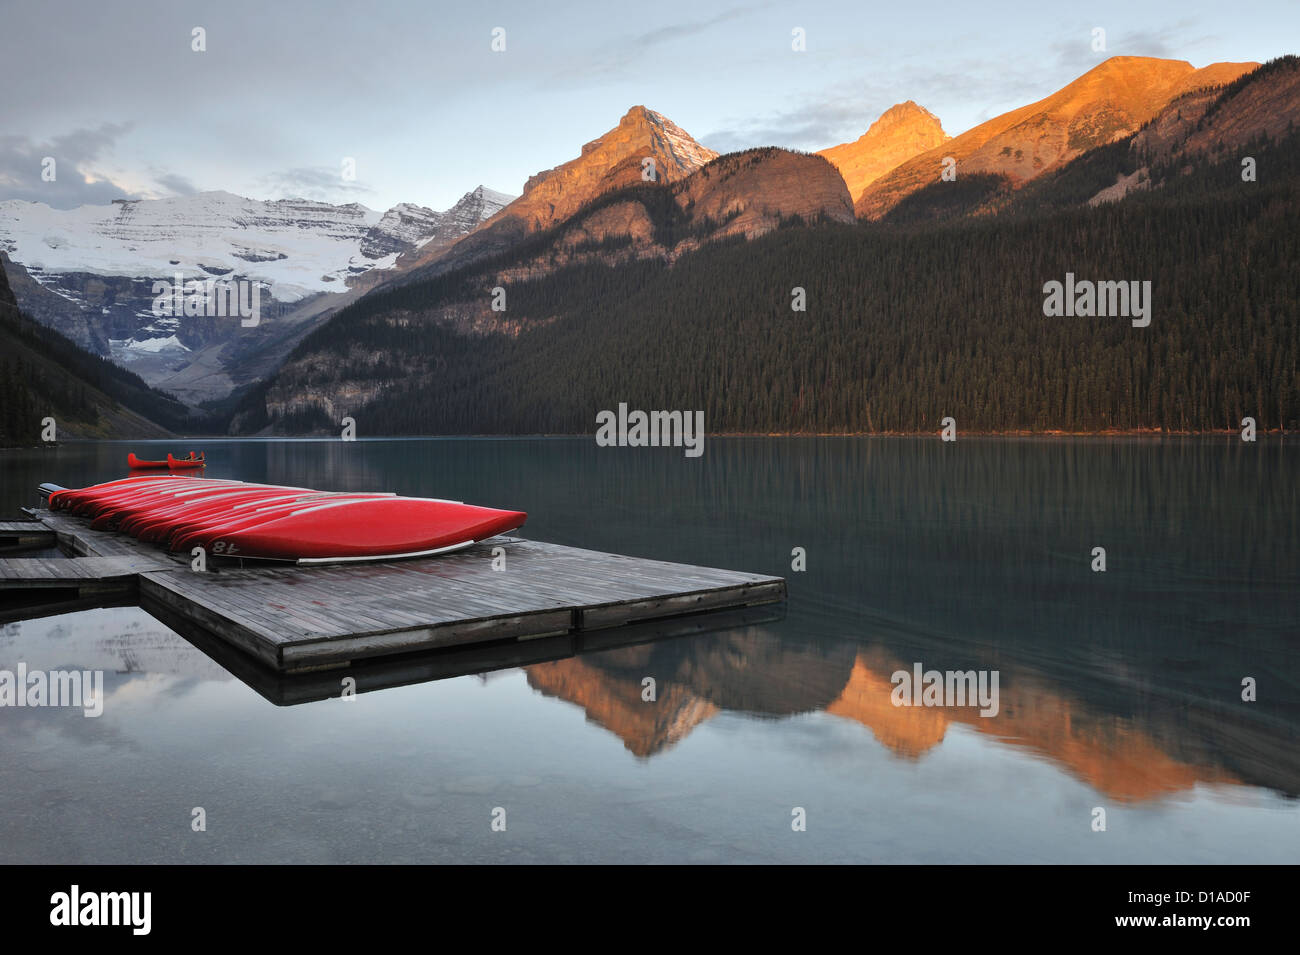 Roten Kanus, Lake Louise, Banff Nationalpark, Alberta, Kanada Stockbild